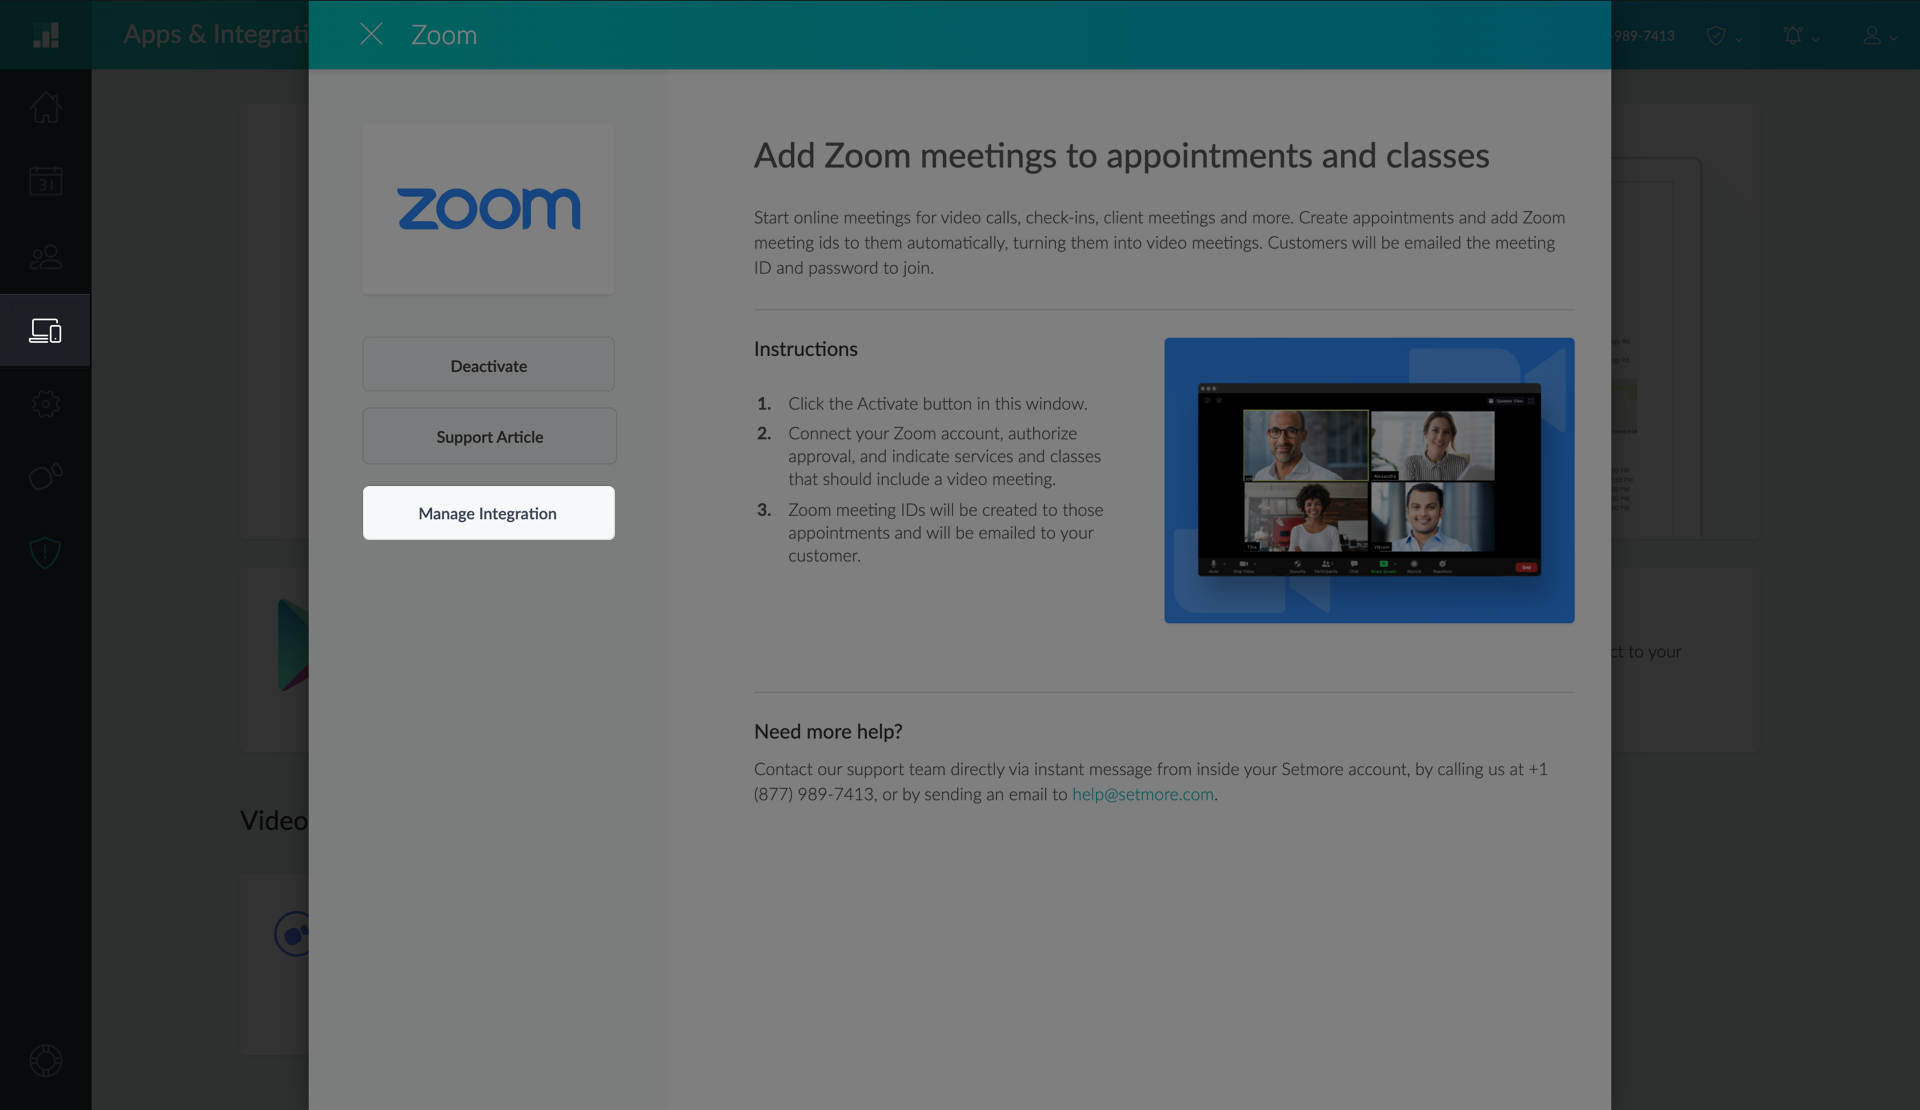 Managing the Zoom Integration settings